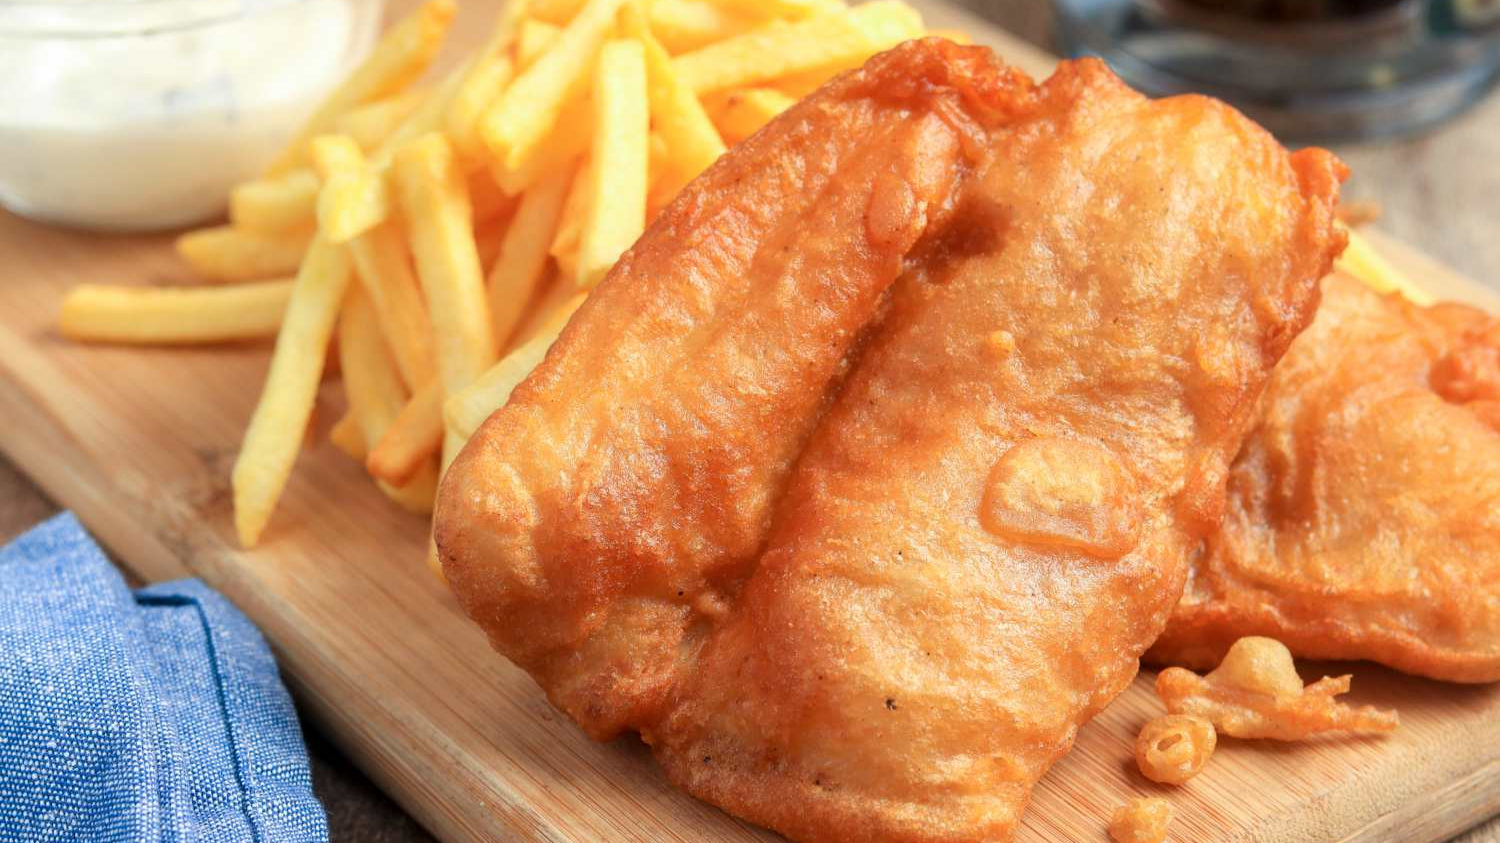 best-fish-and-chips-recipe-434856-Hero-5b61b89346e0fb00500f2141.jpg